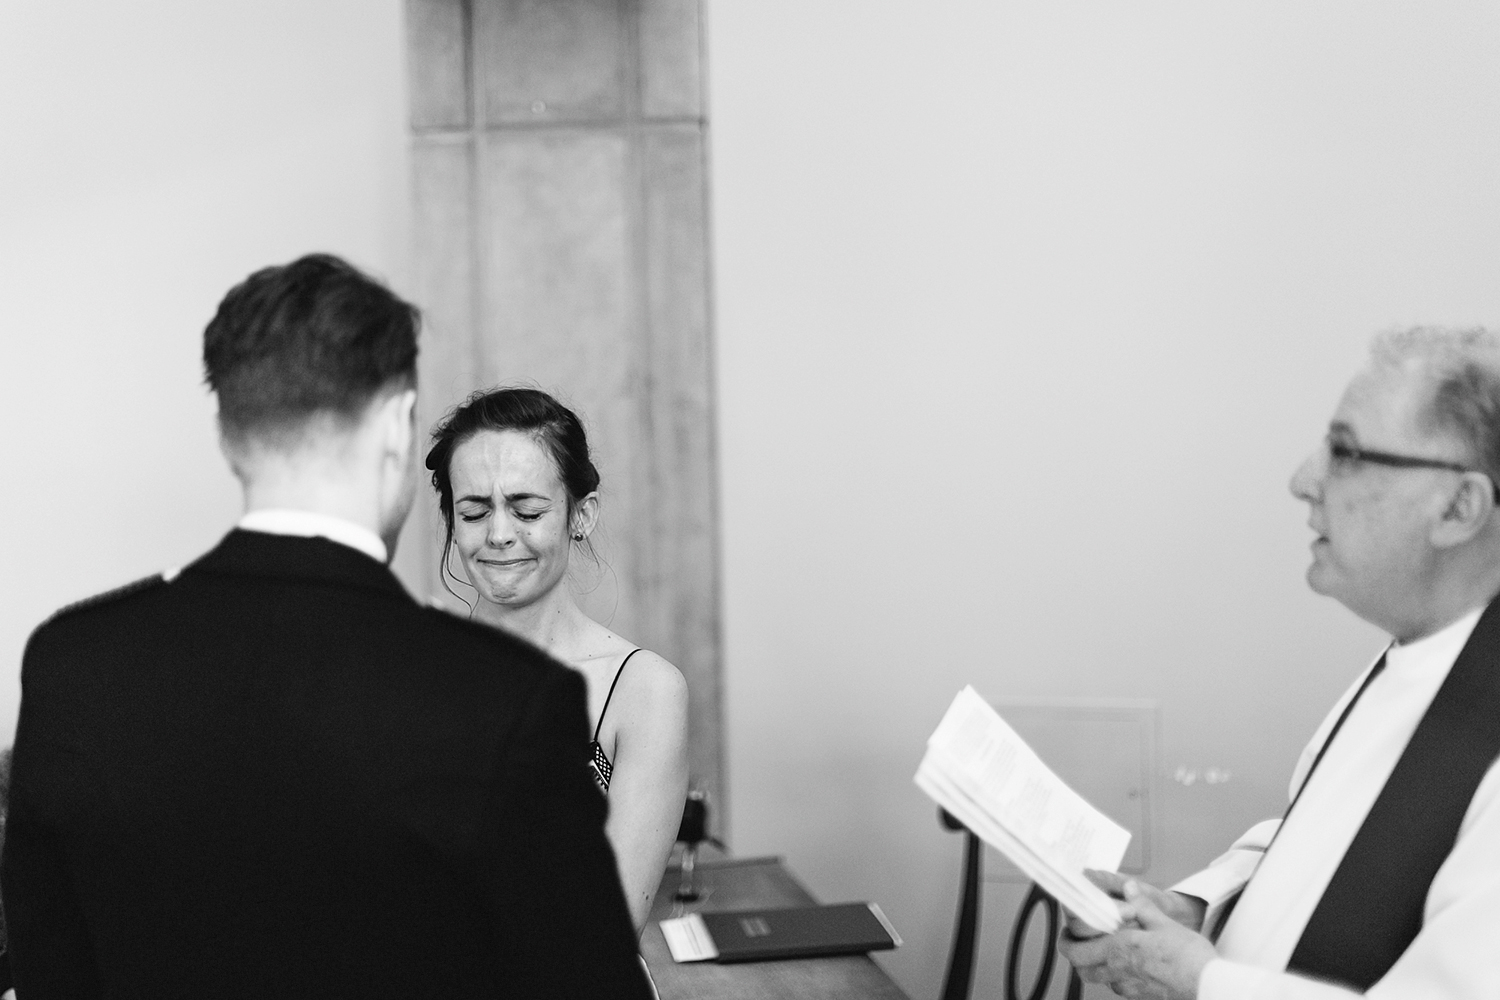 toronto-city-hall-elopement-wedding-old-city-hall-nathan-phillips-square-toronto-wedding-photographer-ryanne-hollies-photography-ceremony-city-hall-emotional-candid-moments-how-to-do-a-city-hall-wedding-toronto-vows-bride-crying.jpg